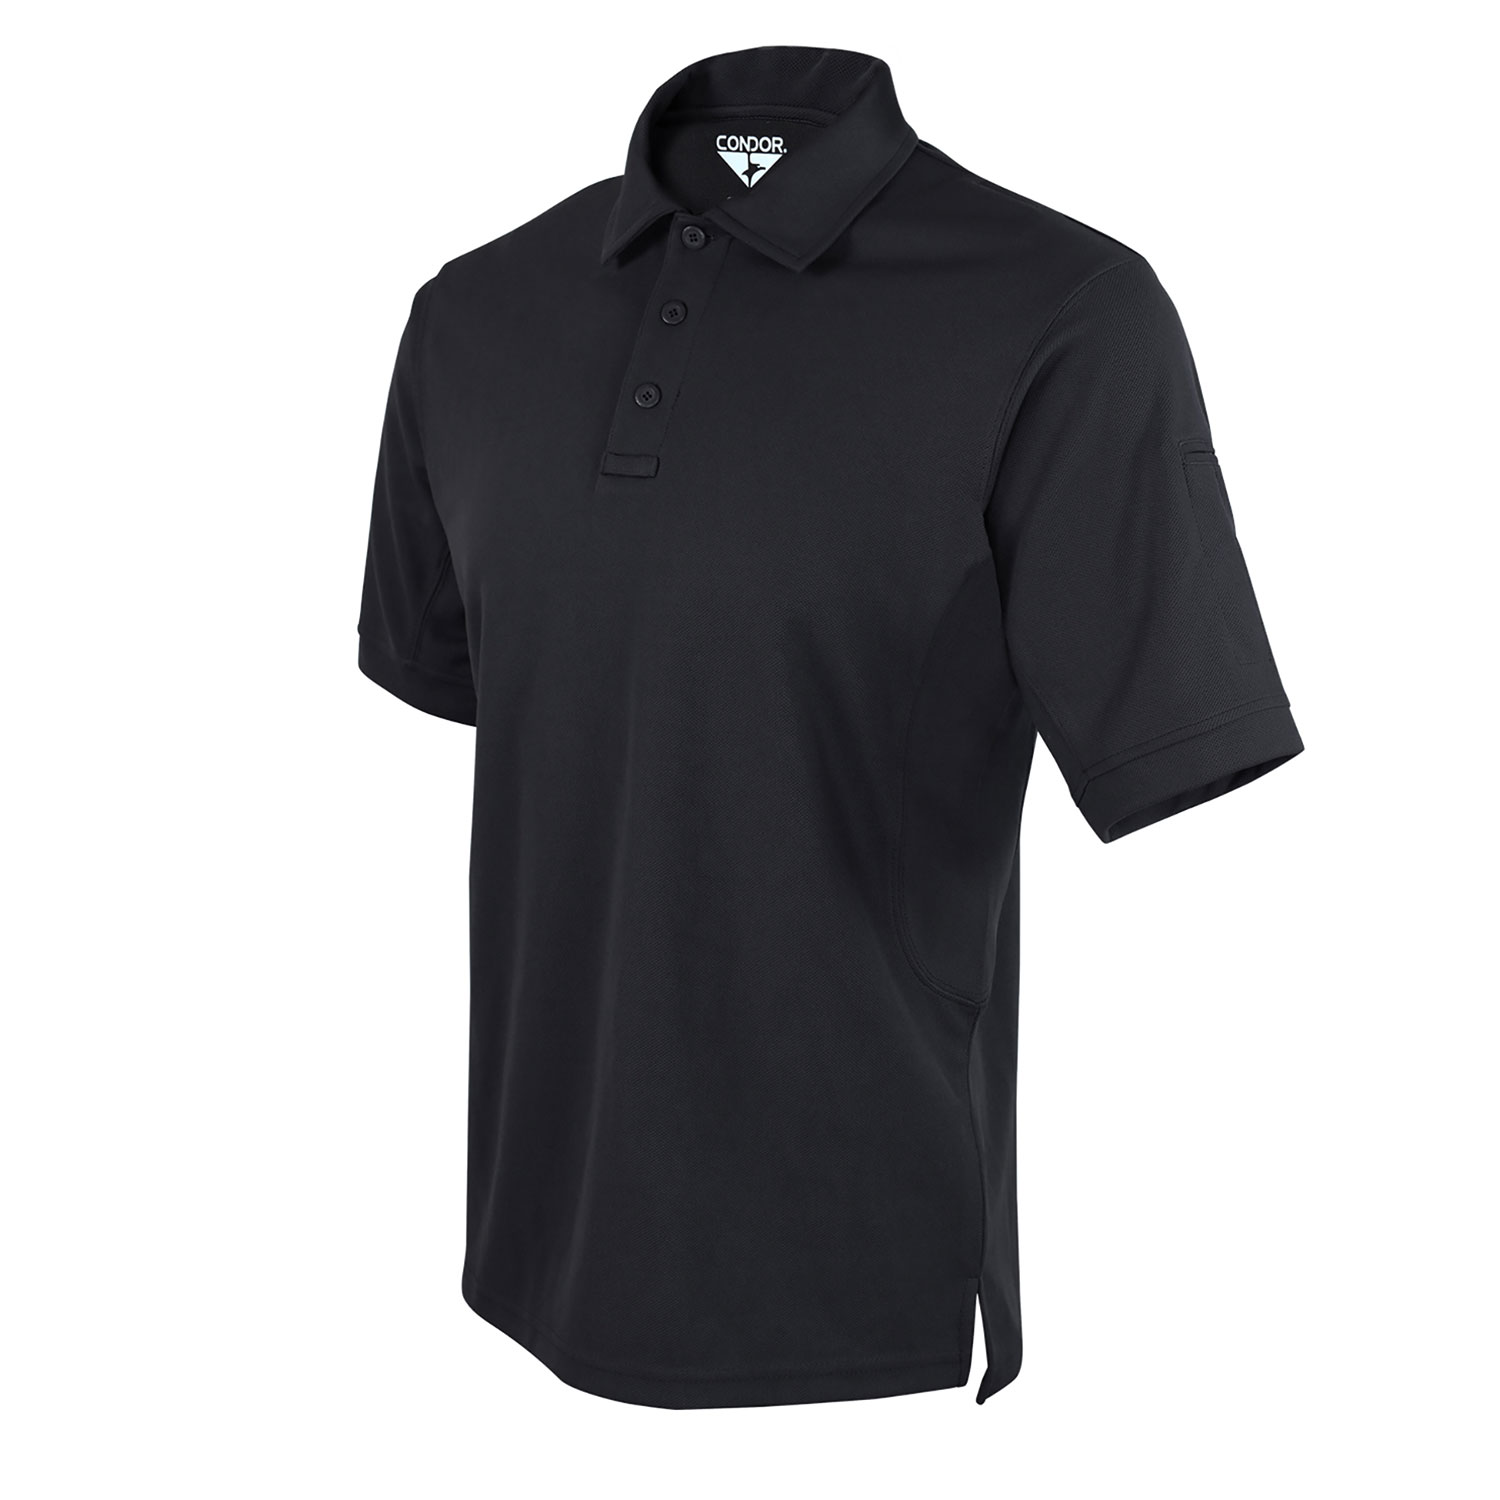 Condor Tactical S/S Polo Shirt